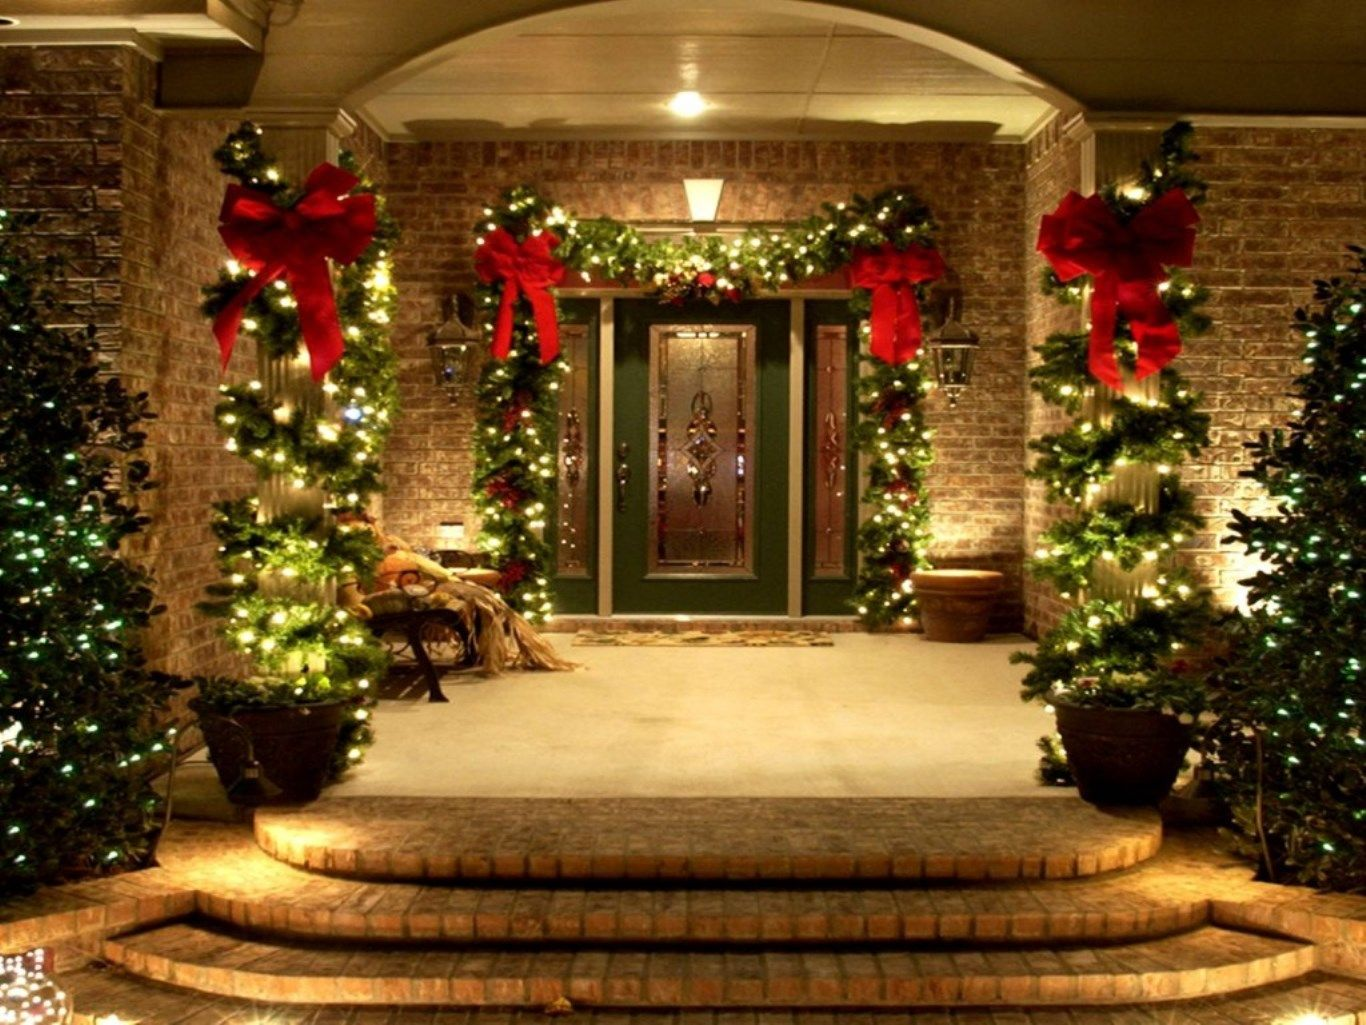 10 Tips For Decorating Your Home For Sale During The Holidays Realestate Outside Christmas Decorations Decorating With Christmas Lights Christmas Porch Decor